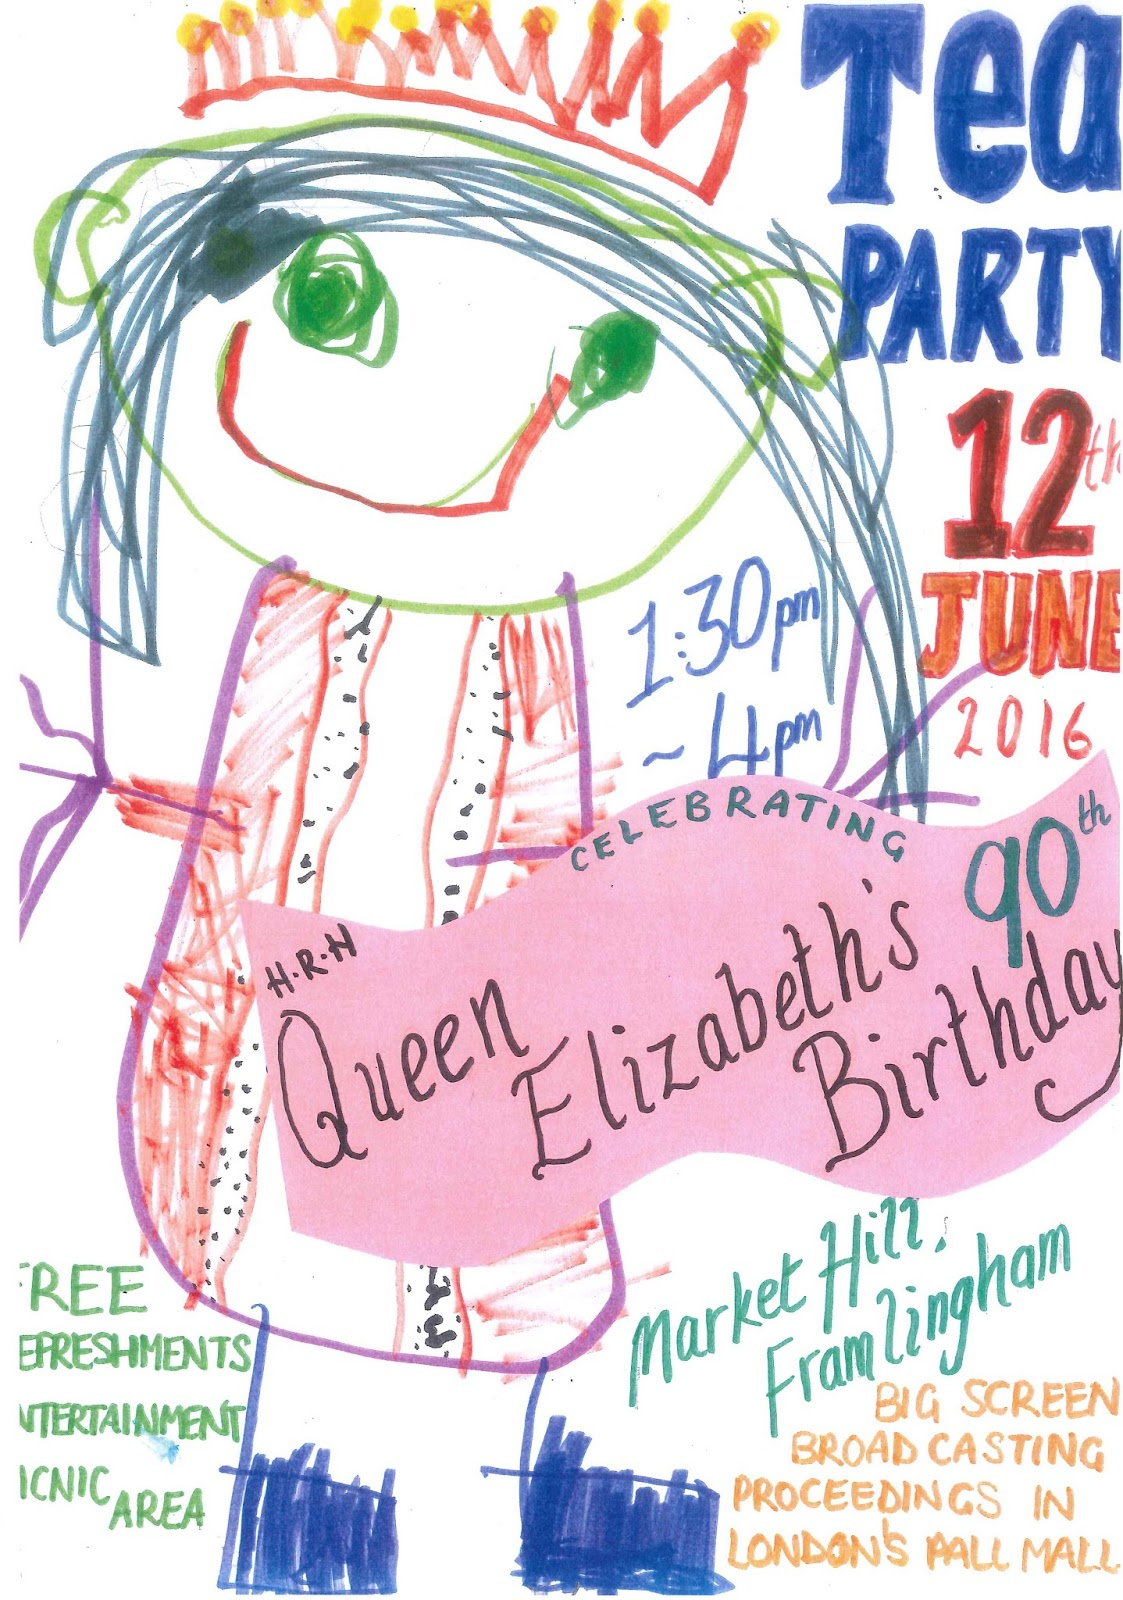 Hitcham's Blog: The Queen's 90th Birthday Celebration